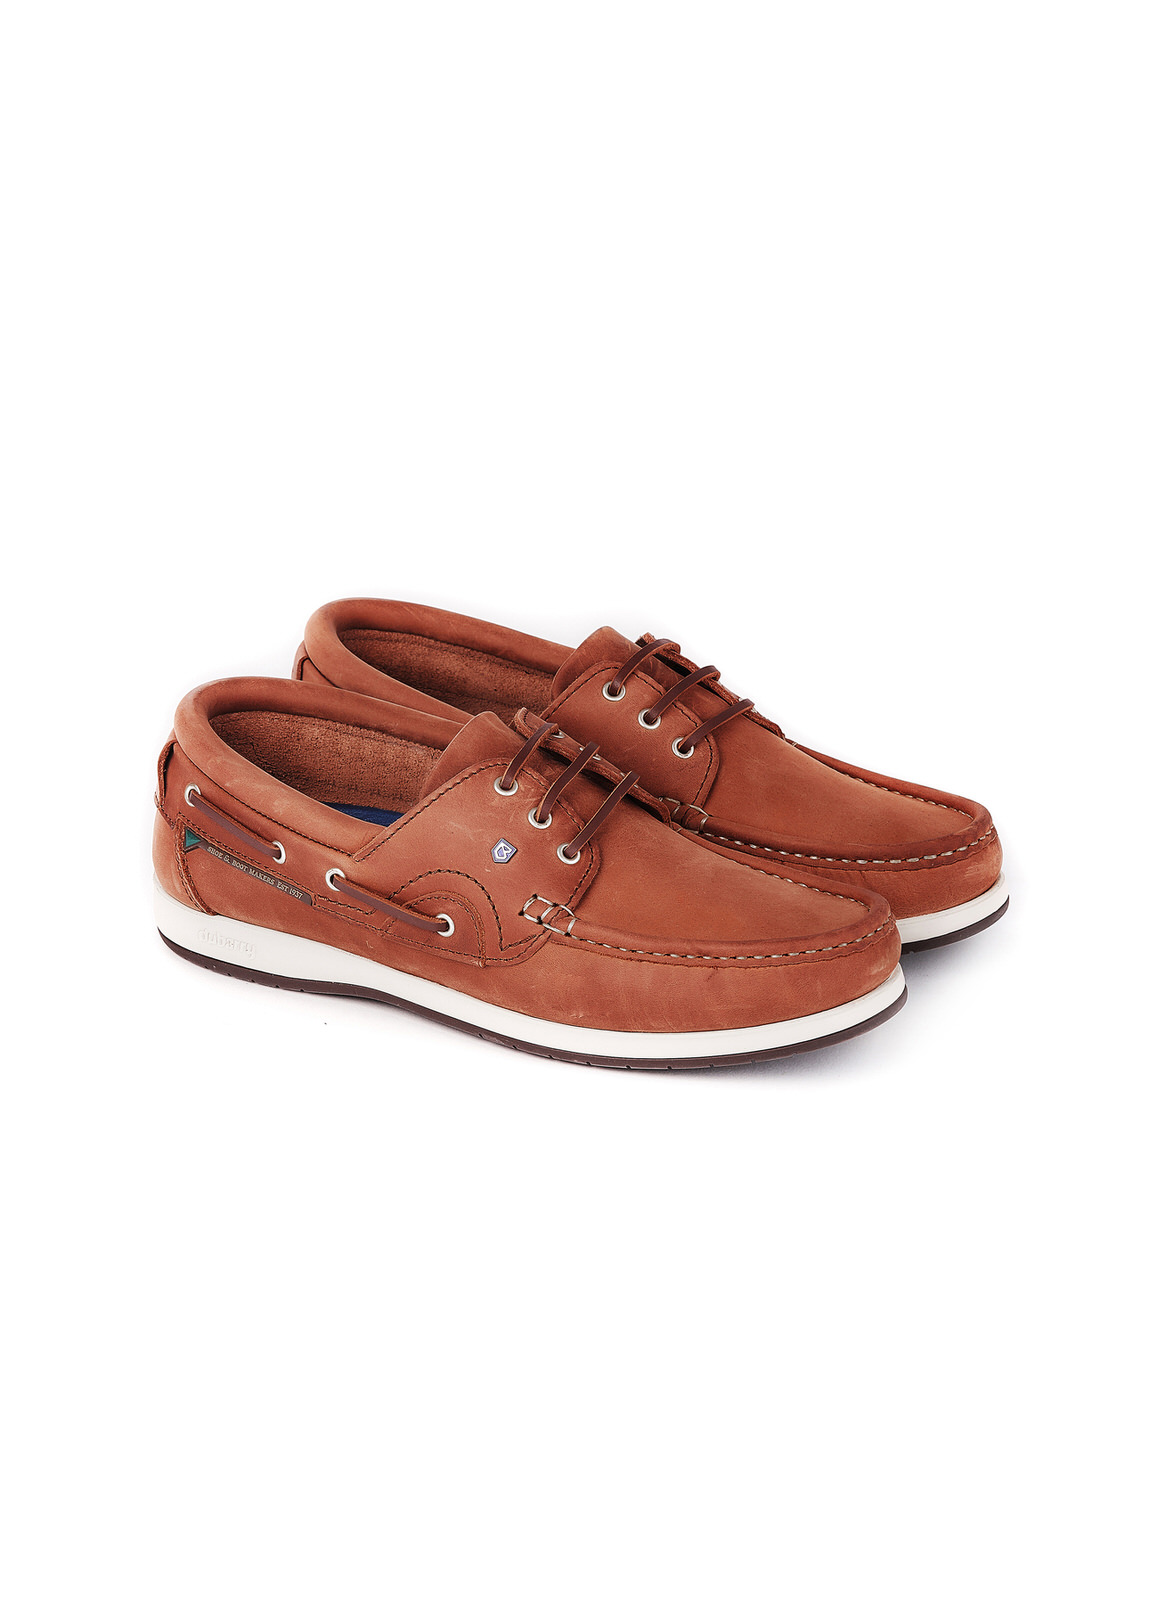 Commodore_XLT_Deck_Shoe_Chestnut_Image_1